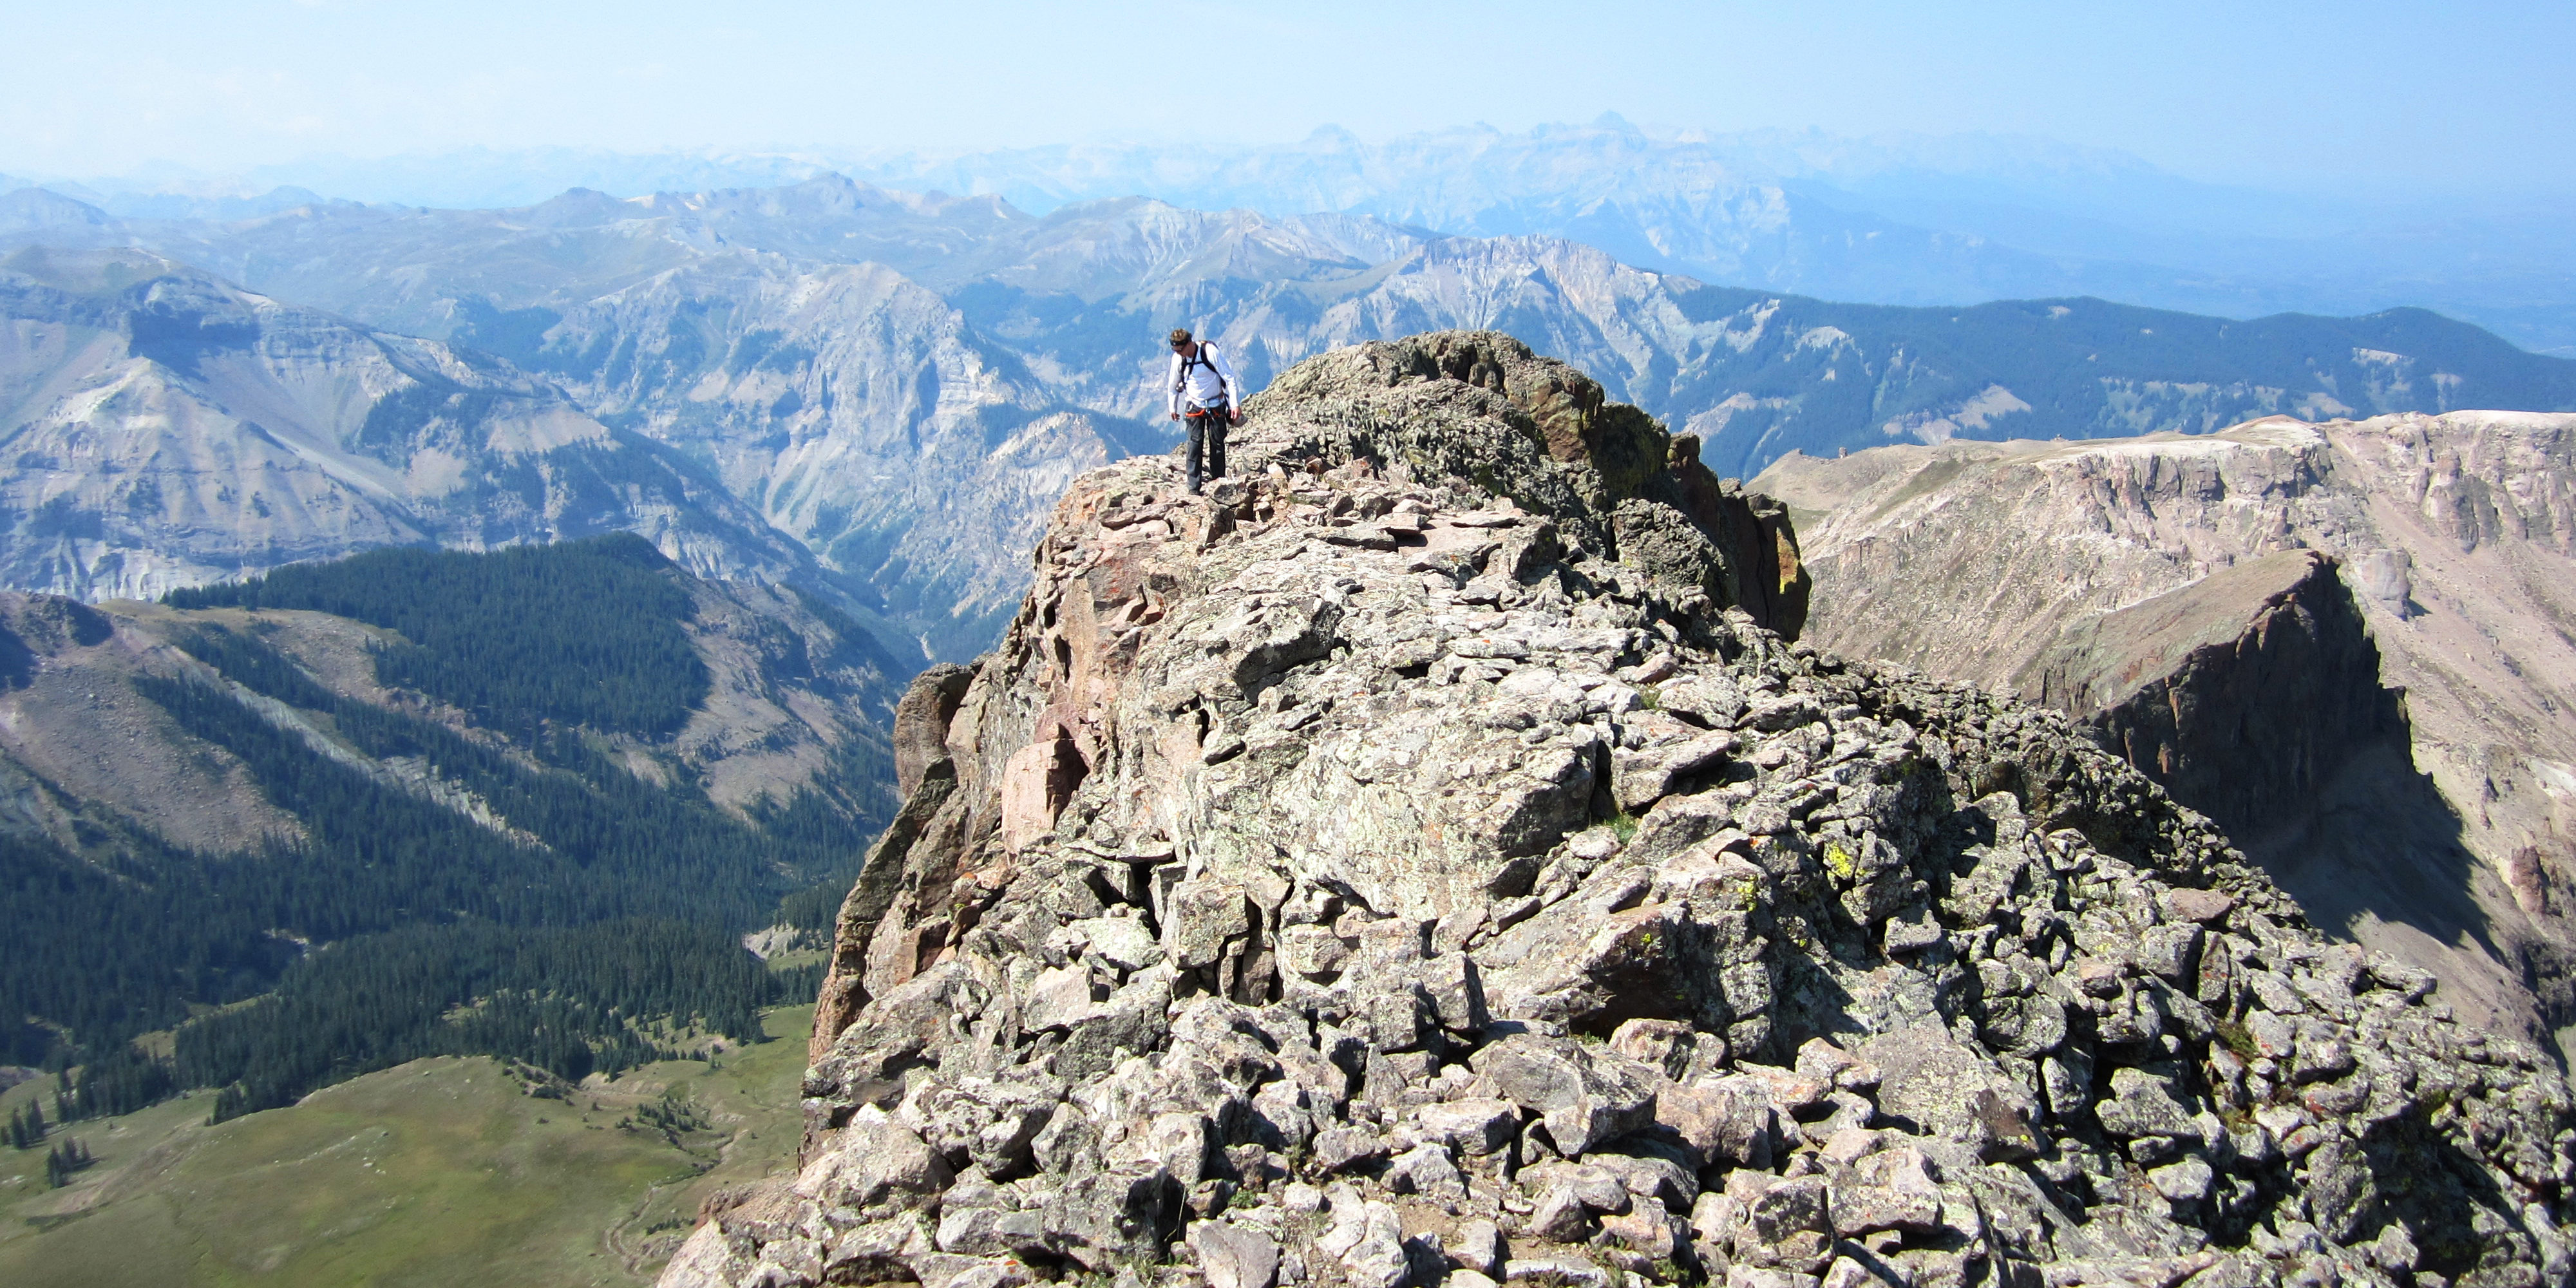 Tommy admiring the drop of the south side of Coxcomb Peak's summit ridge.